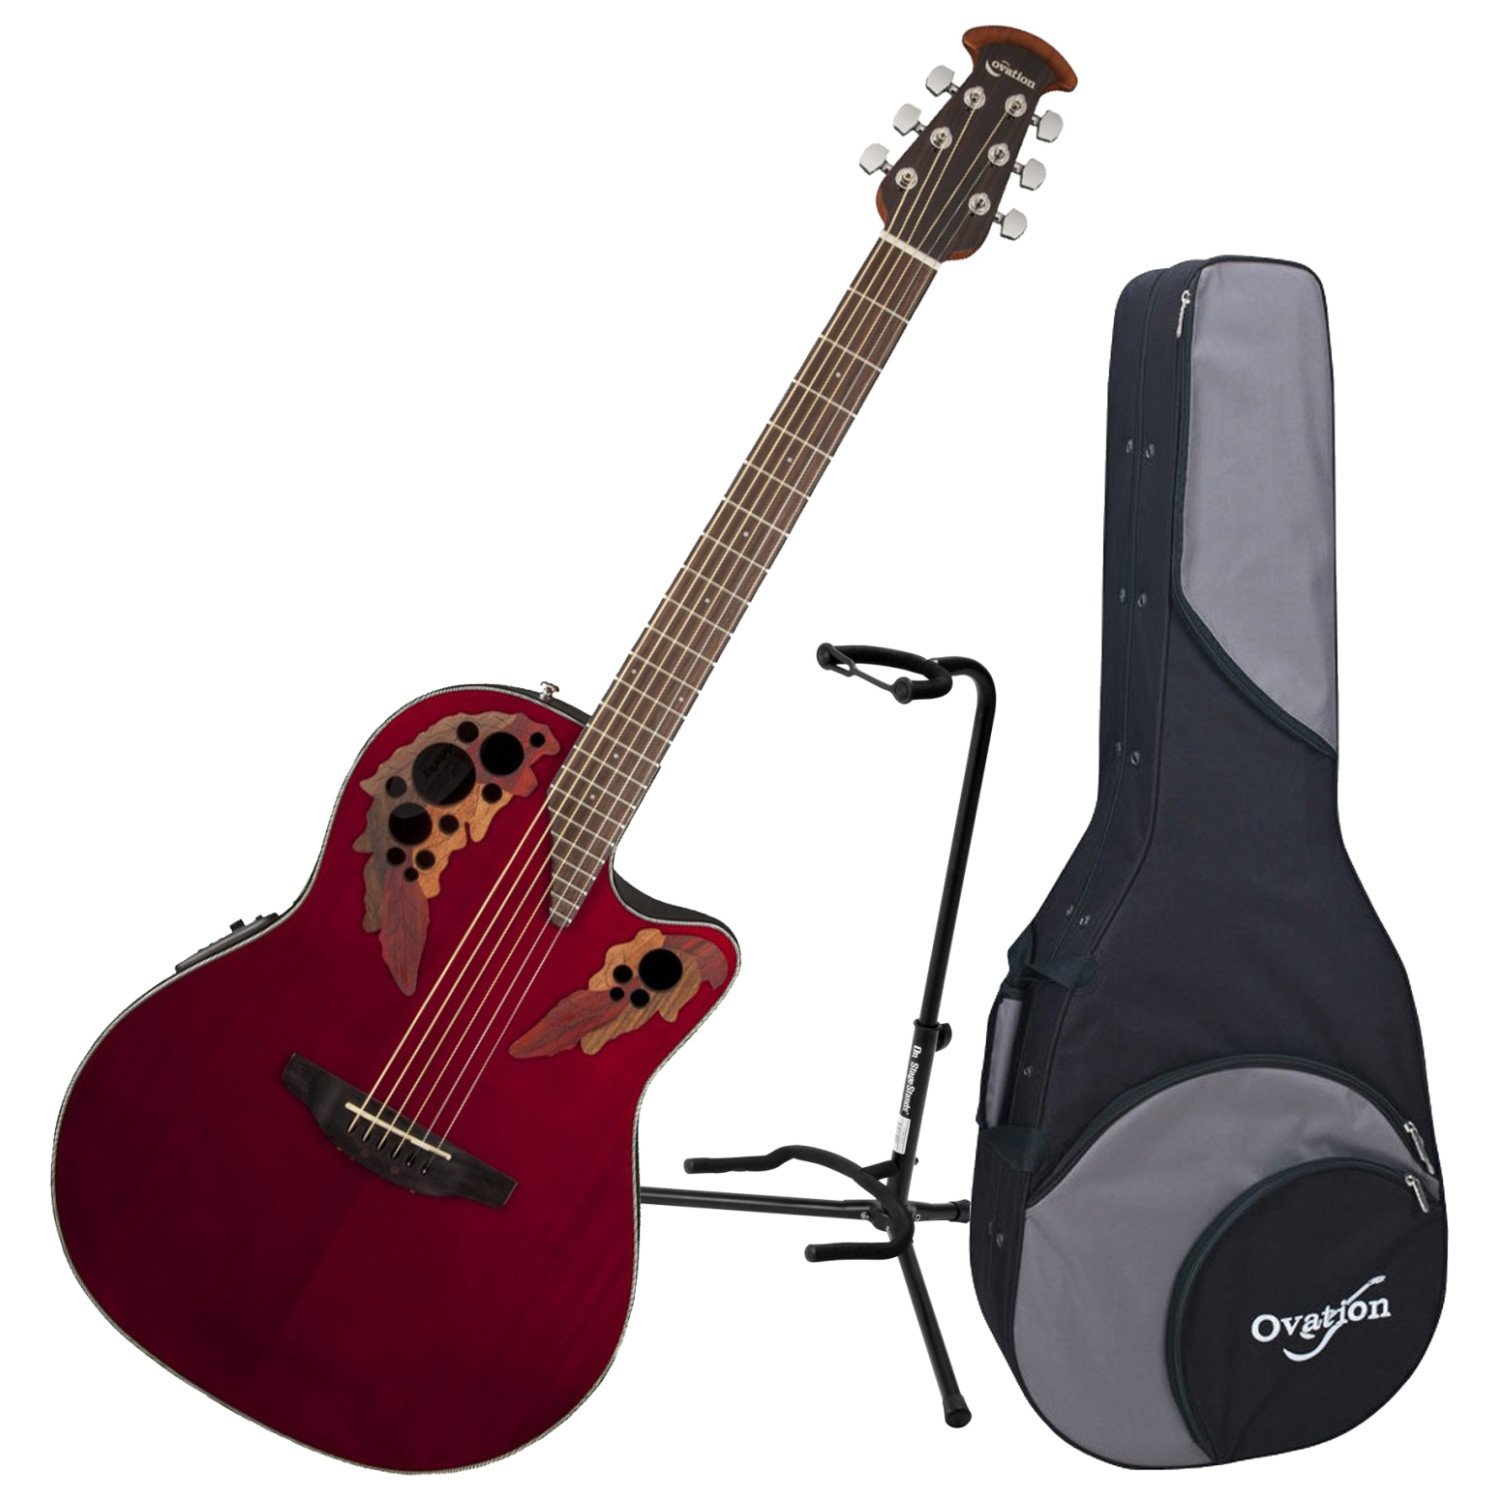 Ovation CE44-RR Acoustic-Electric Guitar (Ruby Red) w/ Case and Stand by Ovation